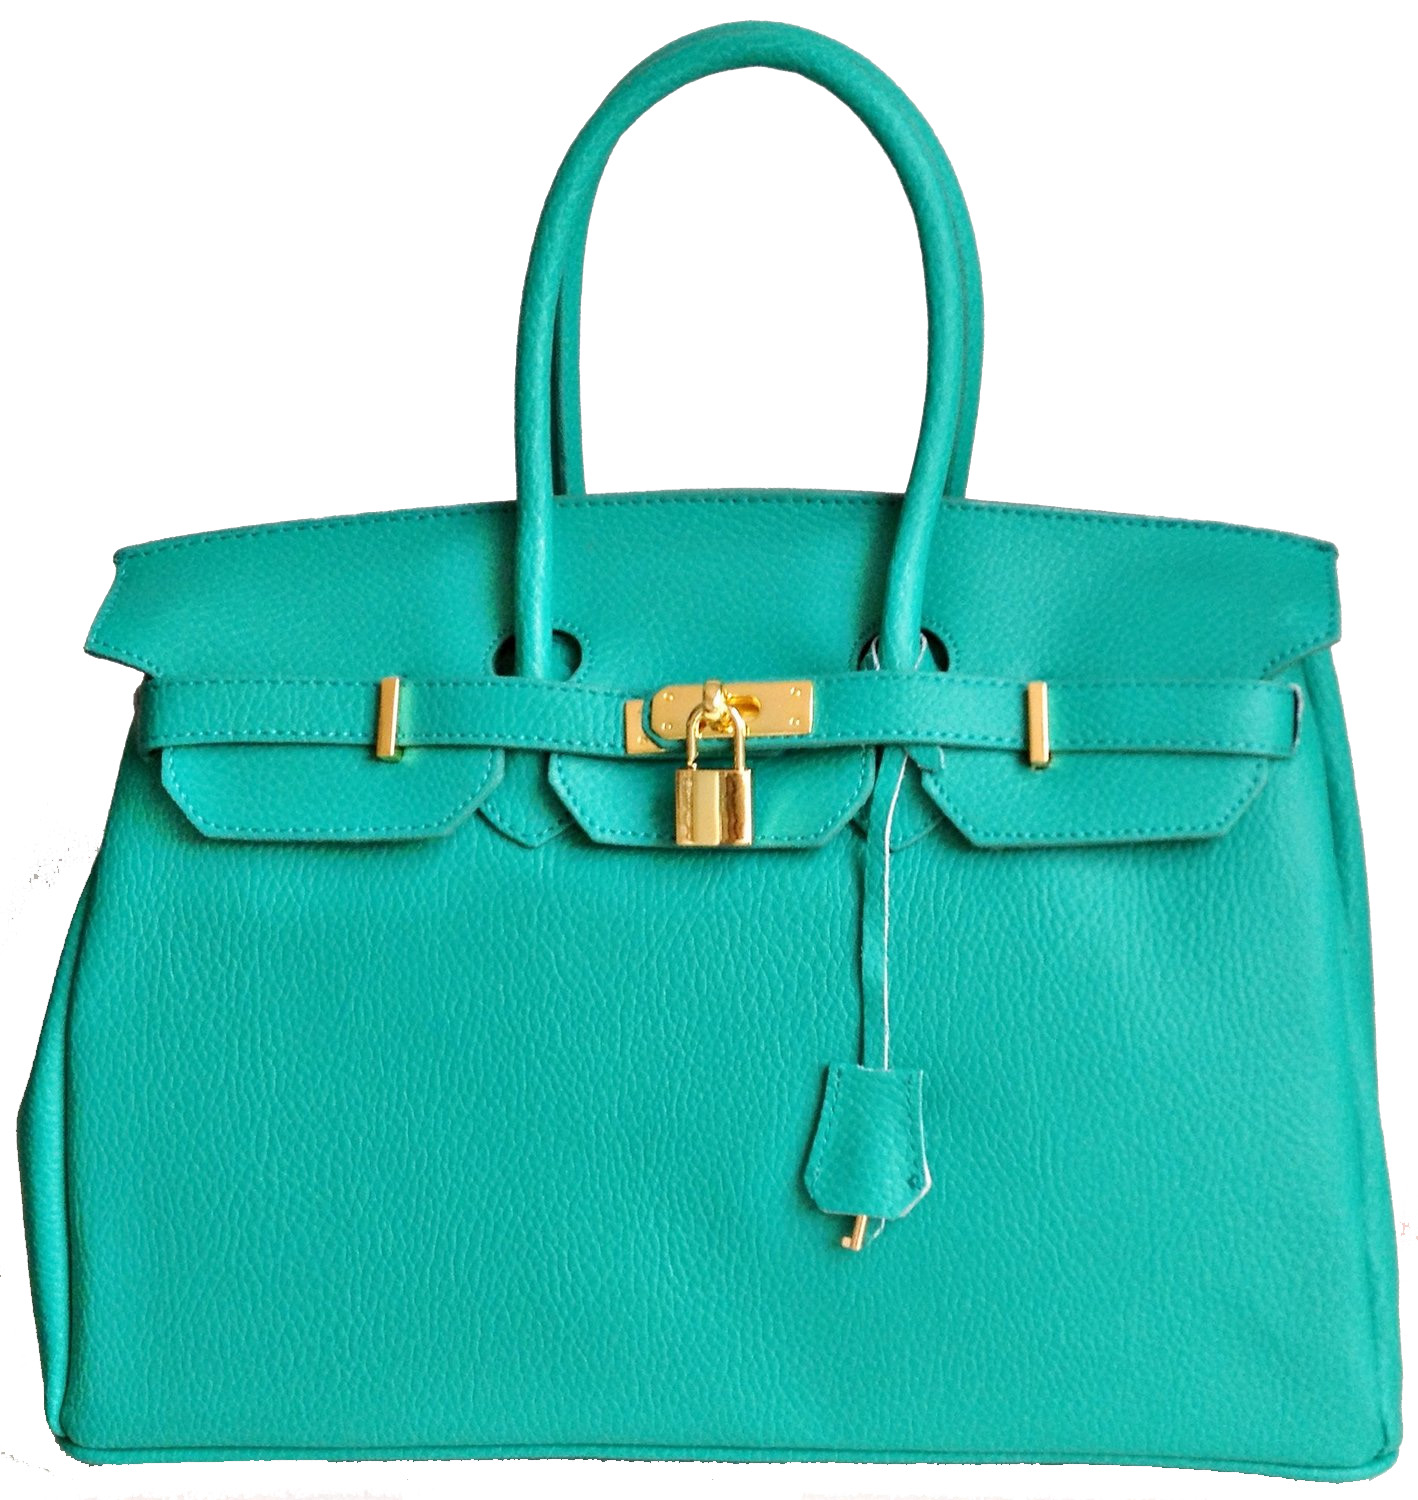 birkin bag price dec 2014